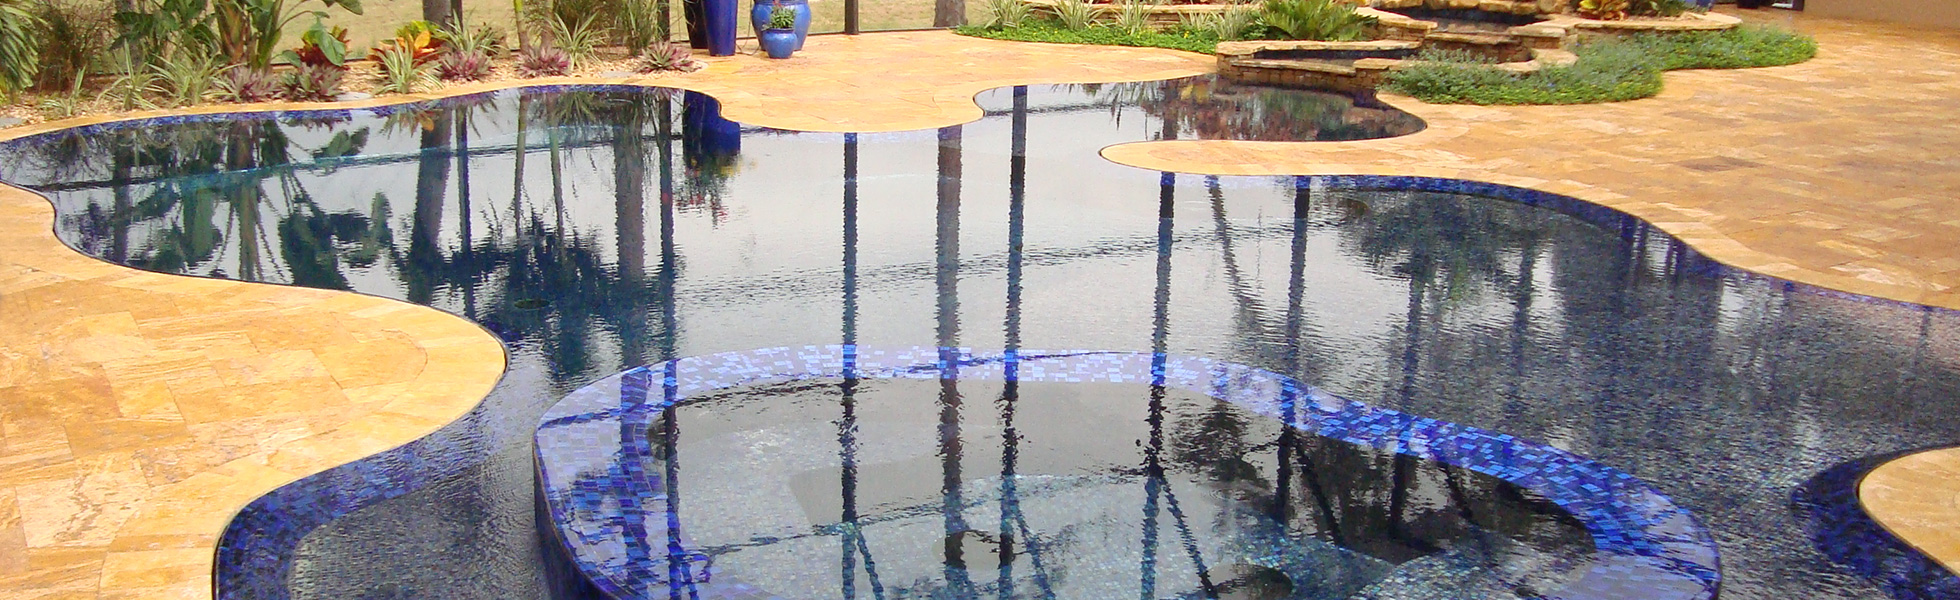 Custom Overflow Perimeter Swimming Pool by Paradise Pools by Design in Orlando, FL